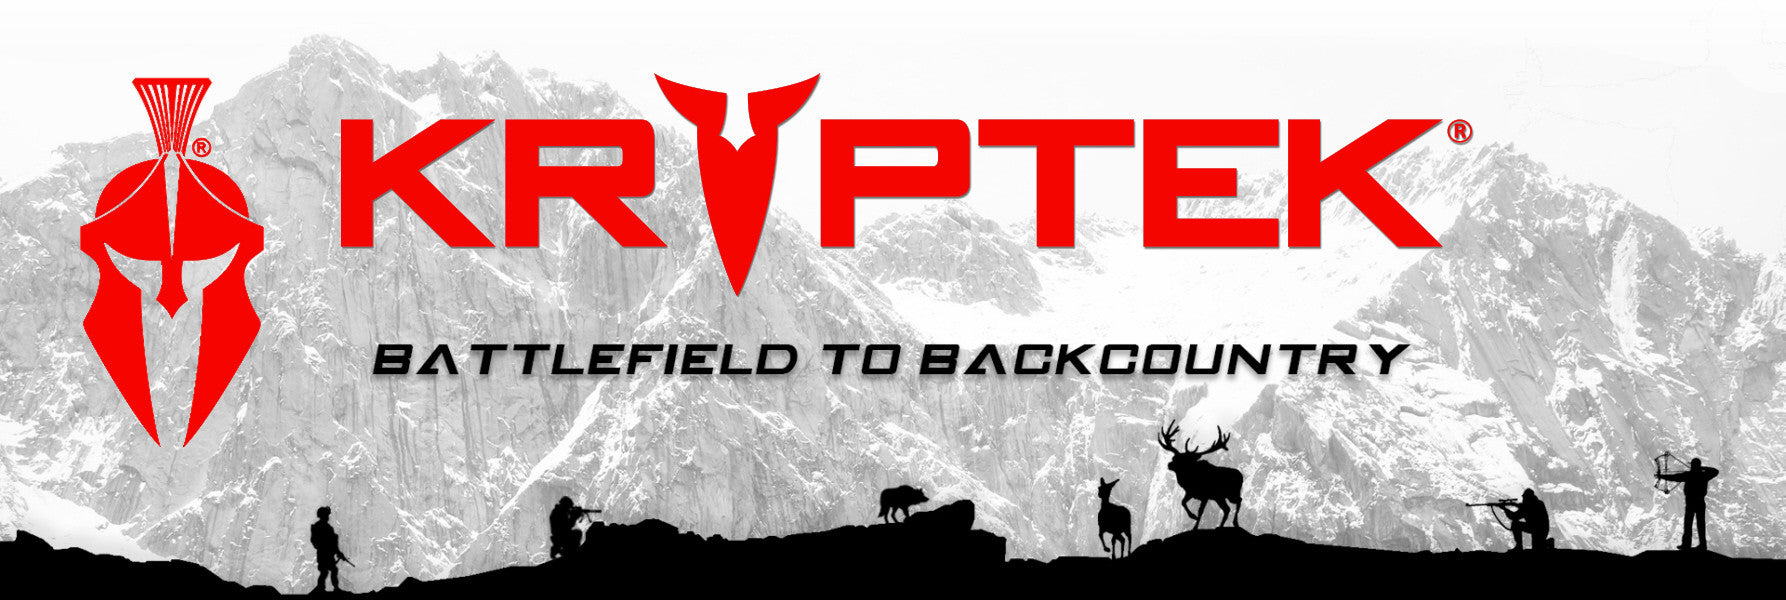 Kryptek Header